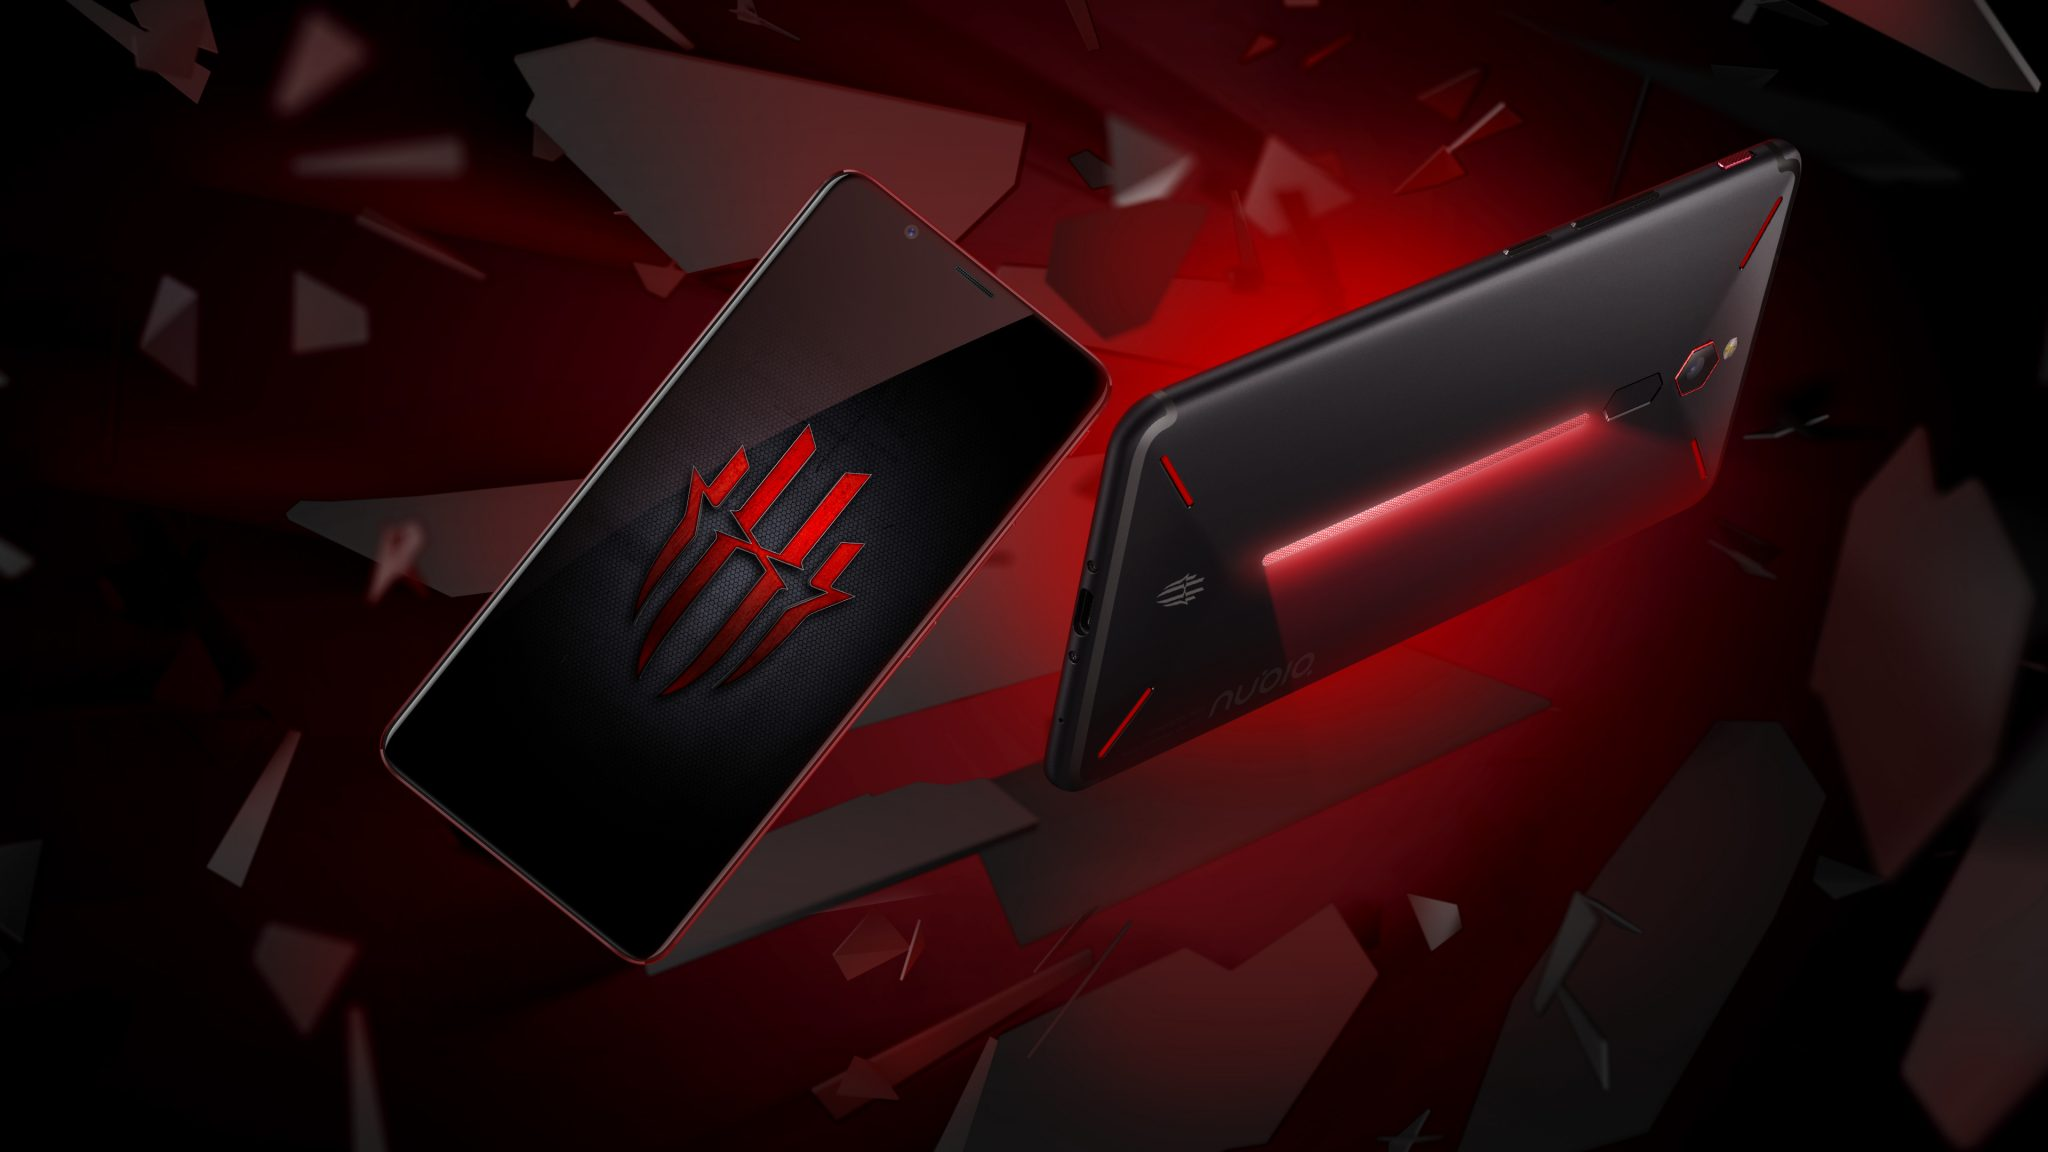 Nubia Red Magic Gaming smartphone launched with Snapdragon 835 1